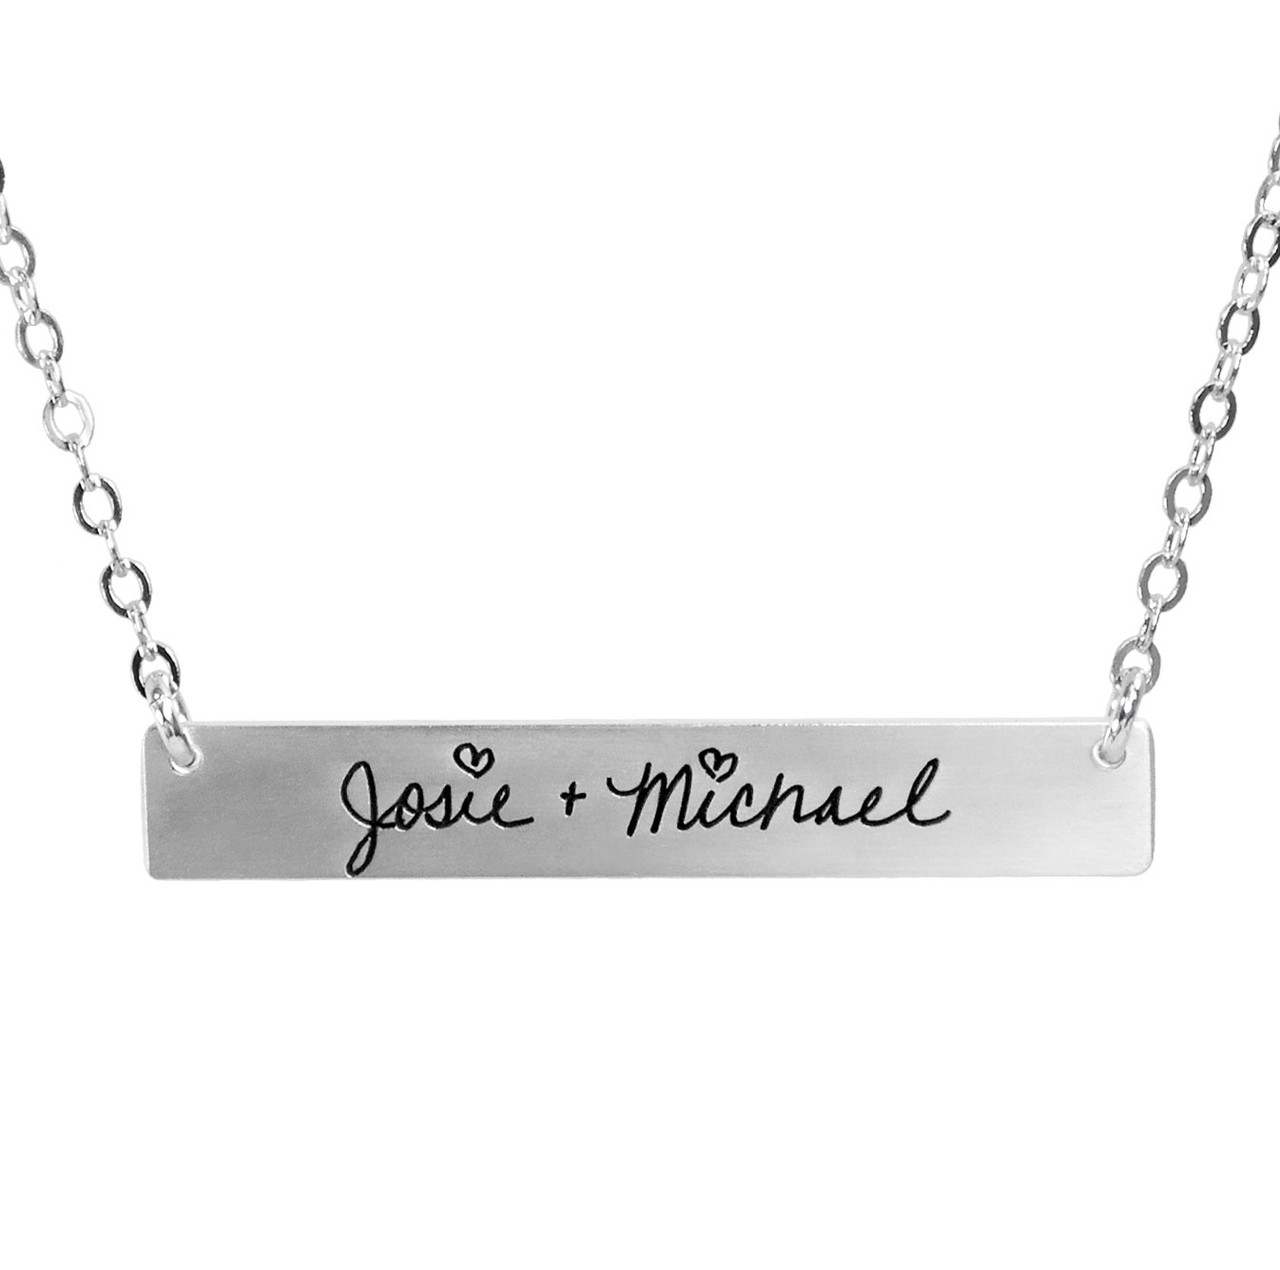 Silver Handwriting bar necklace with your actual handwriting, shown close up on white